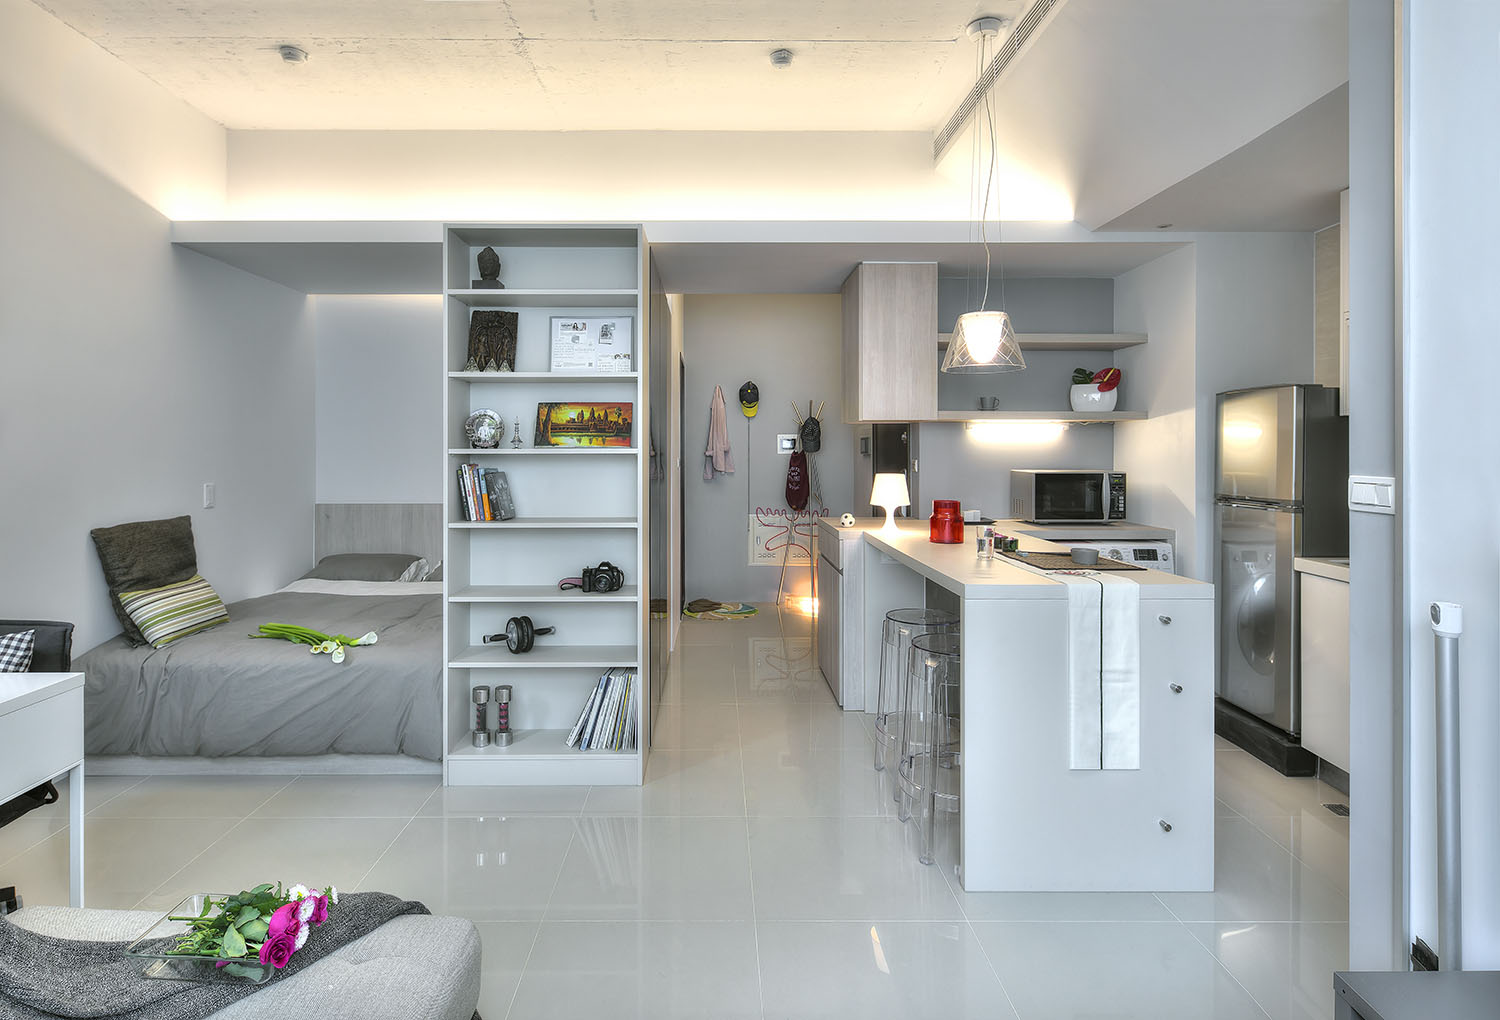 Studio Apartments Design emejing tiny studio apartments images - home ideas design - cerpa